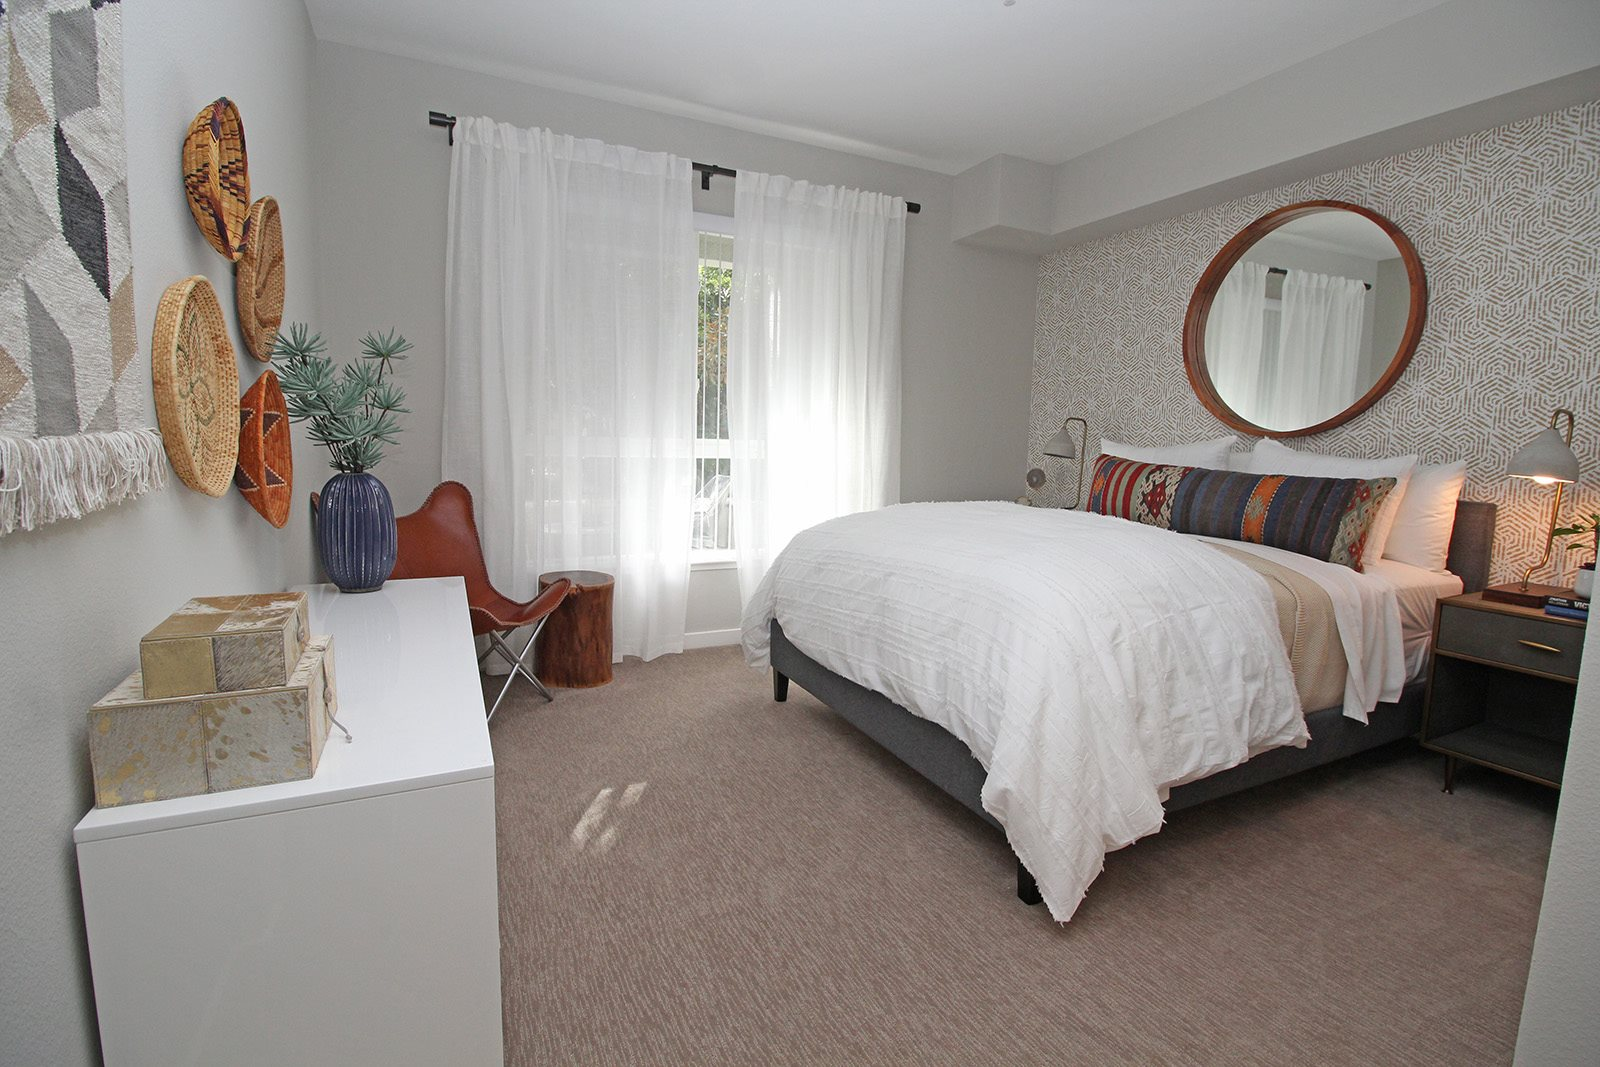 1, 2, 3 Bedroom Apartments- King Size Beds at Dublin Station